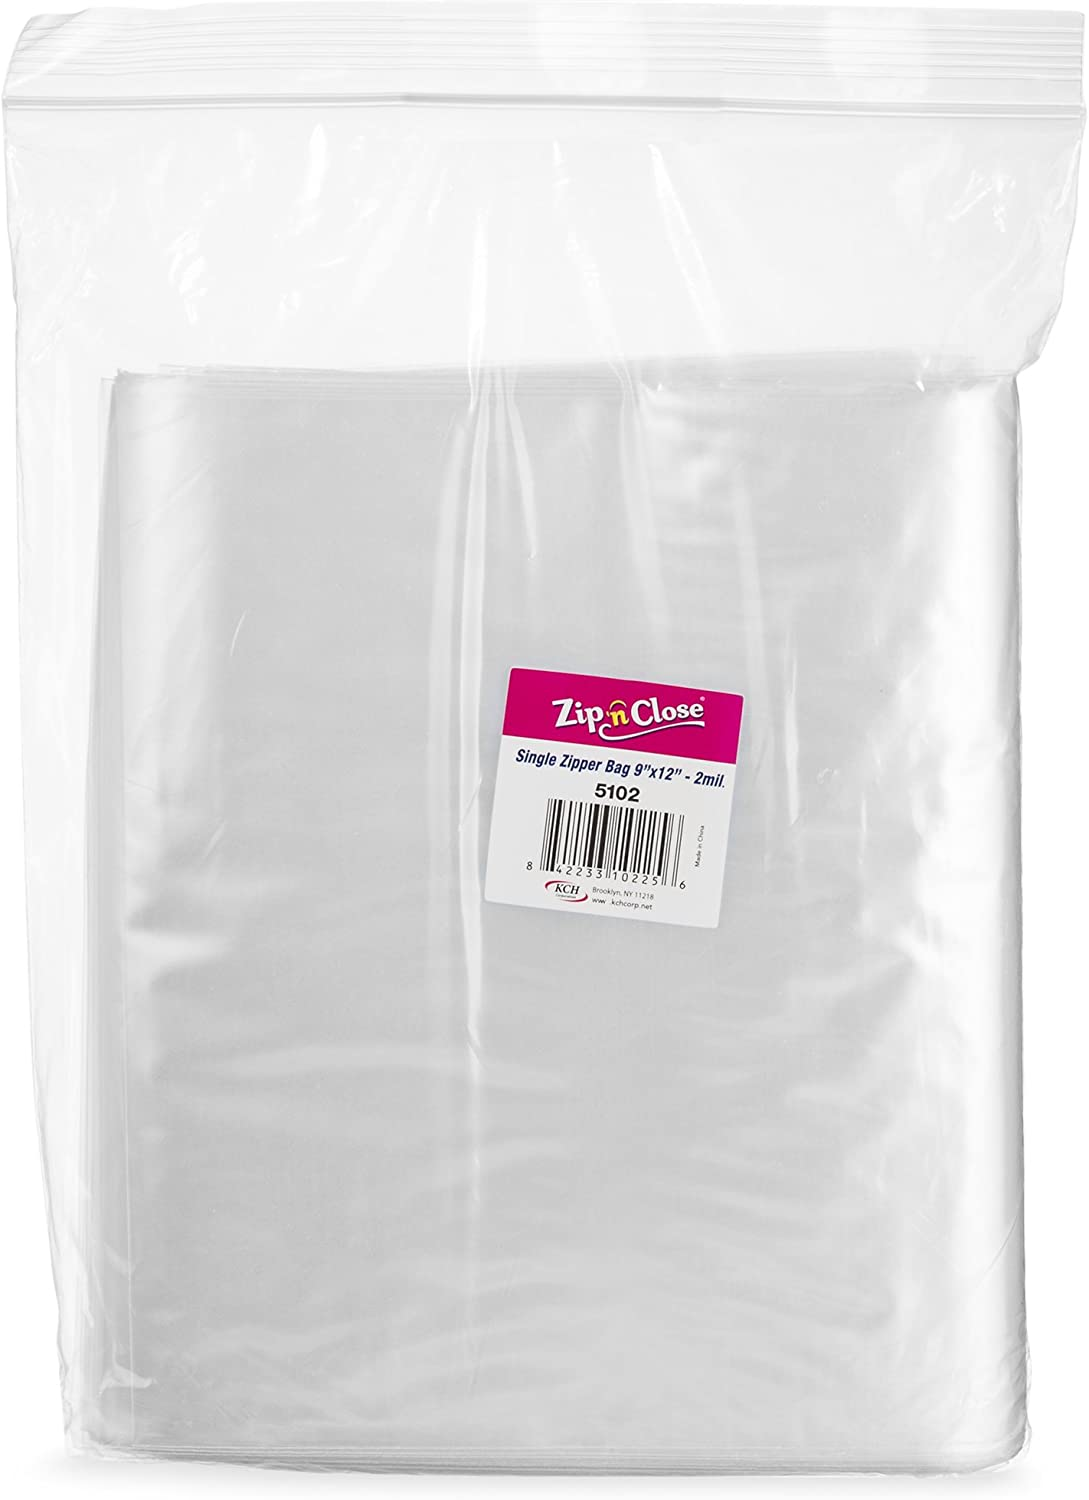 "[200 Bags 9"" x 12""] Zip'n'Close Disposable Plastic Resealable Reusable Bags, 2 Mill Thick, Great for Home, Office, Vacation, Traveling, Sandwich, Fruits, Nuts, Cookies, Or Any Storage Needs (2 Packs)"